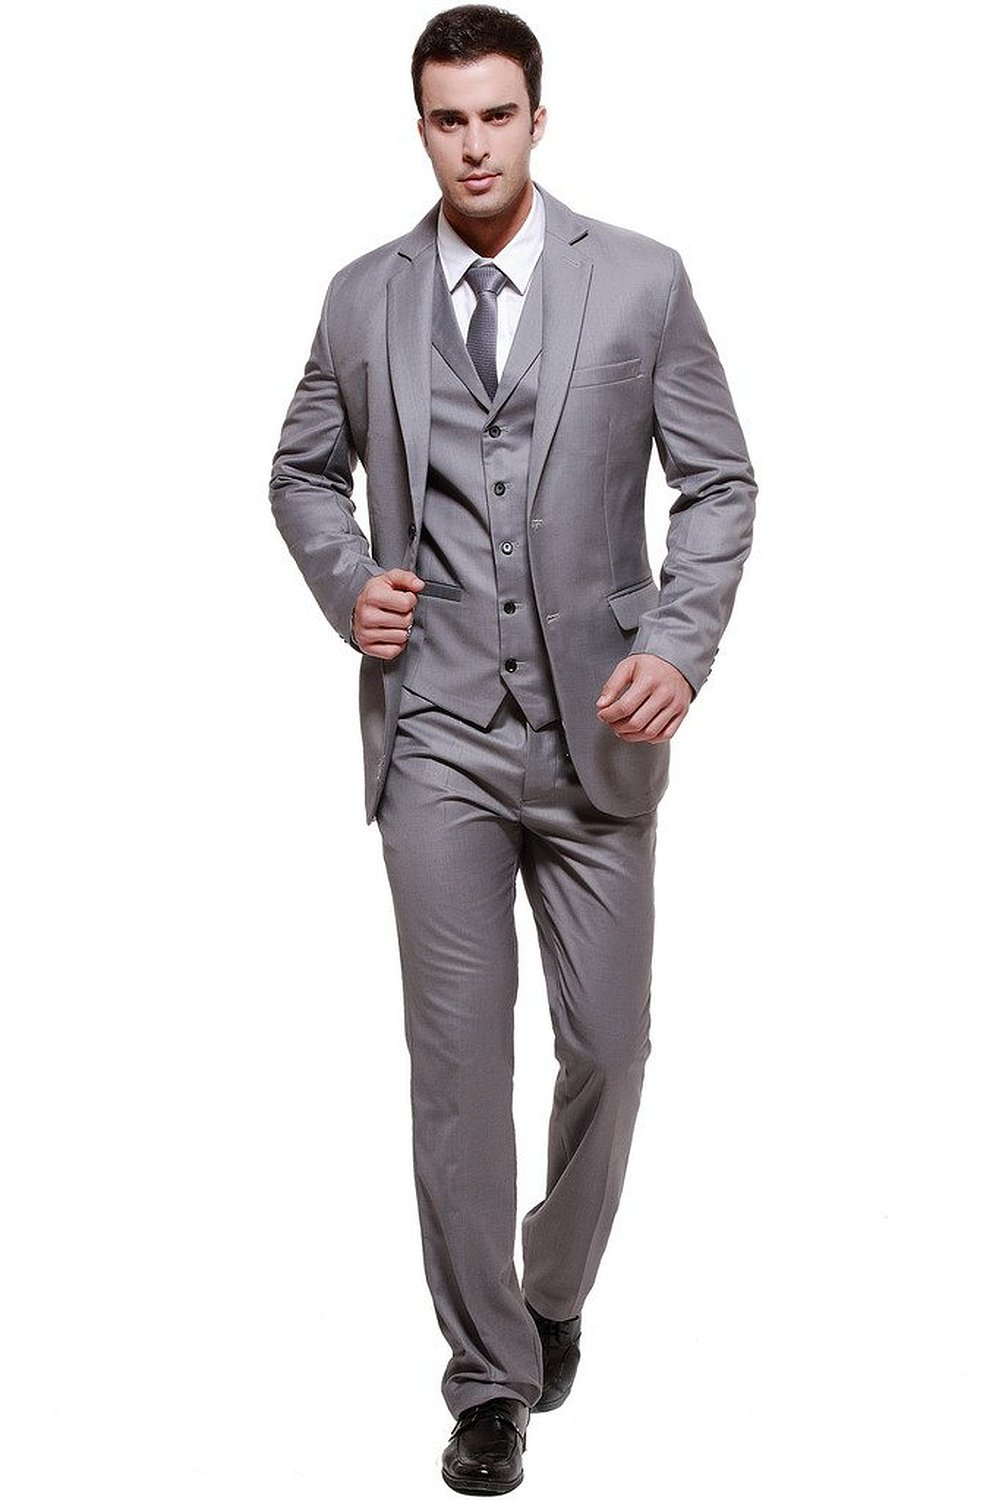 Online Shop Hanayome Men's Modern Fit 3-Piece Suit Blazer Jacket